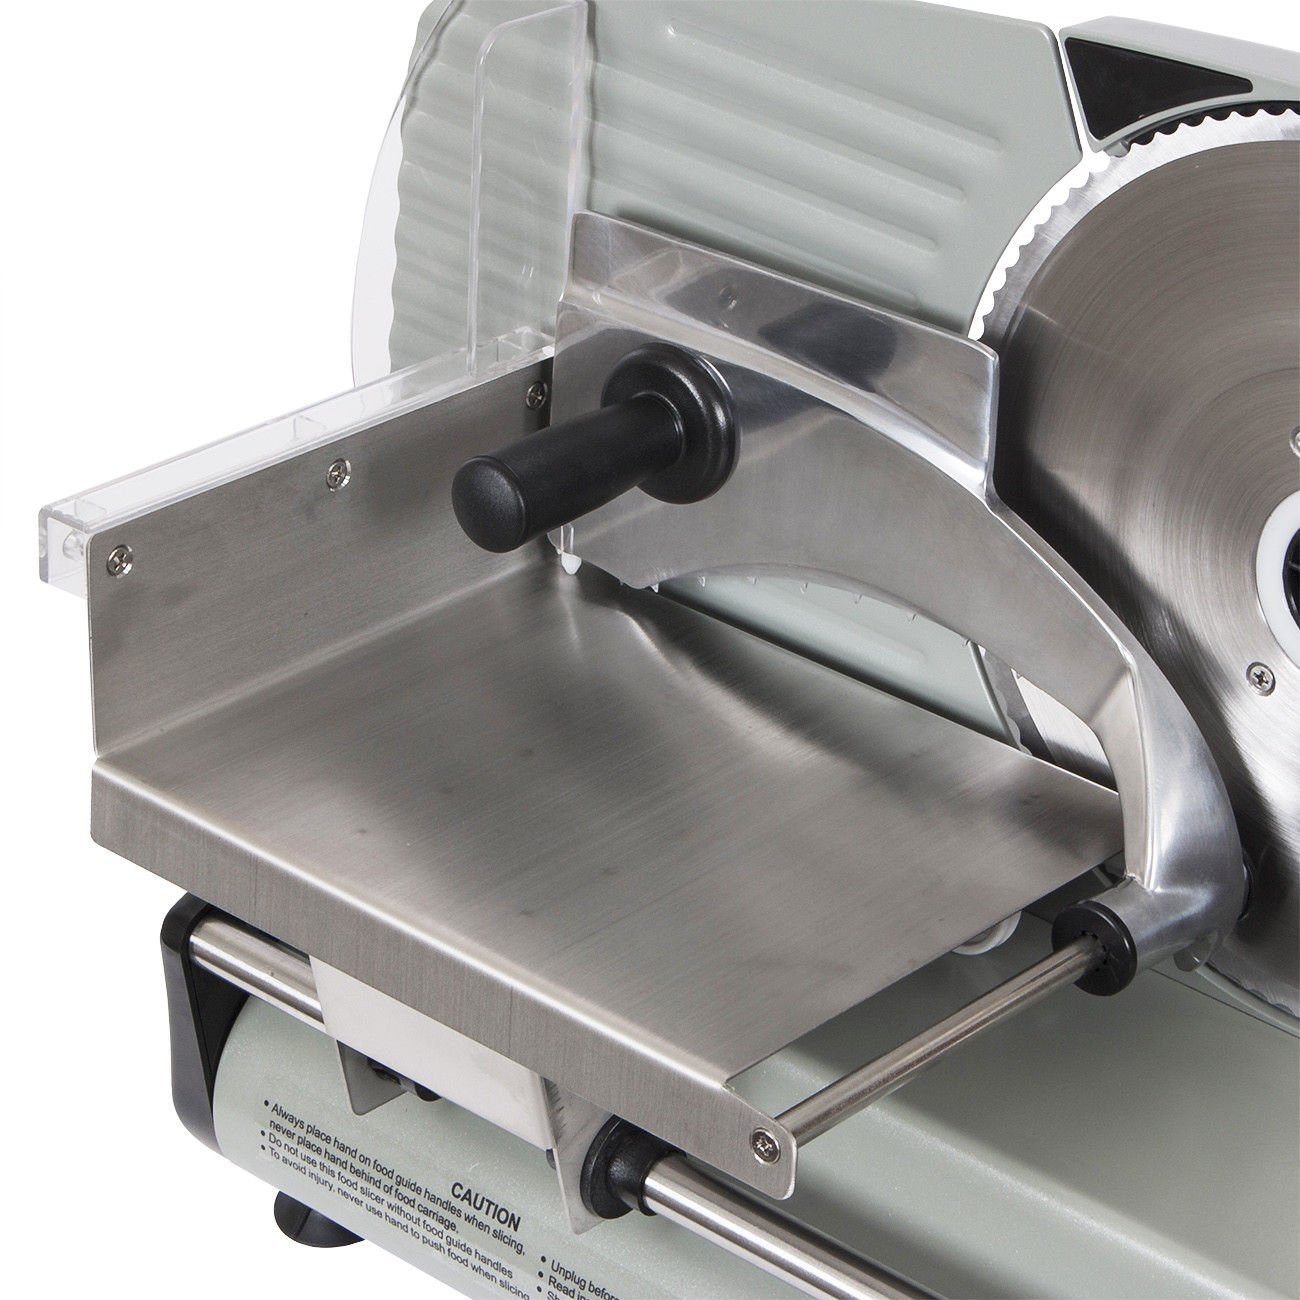 Electric Commercial Meat Slicer, Machine Food Cutting, Deli Slice Veggie Cutter Kitchen 8.7'' Blade 180W by Snow Shop Everything (Image #6)